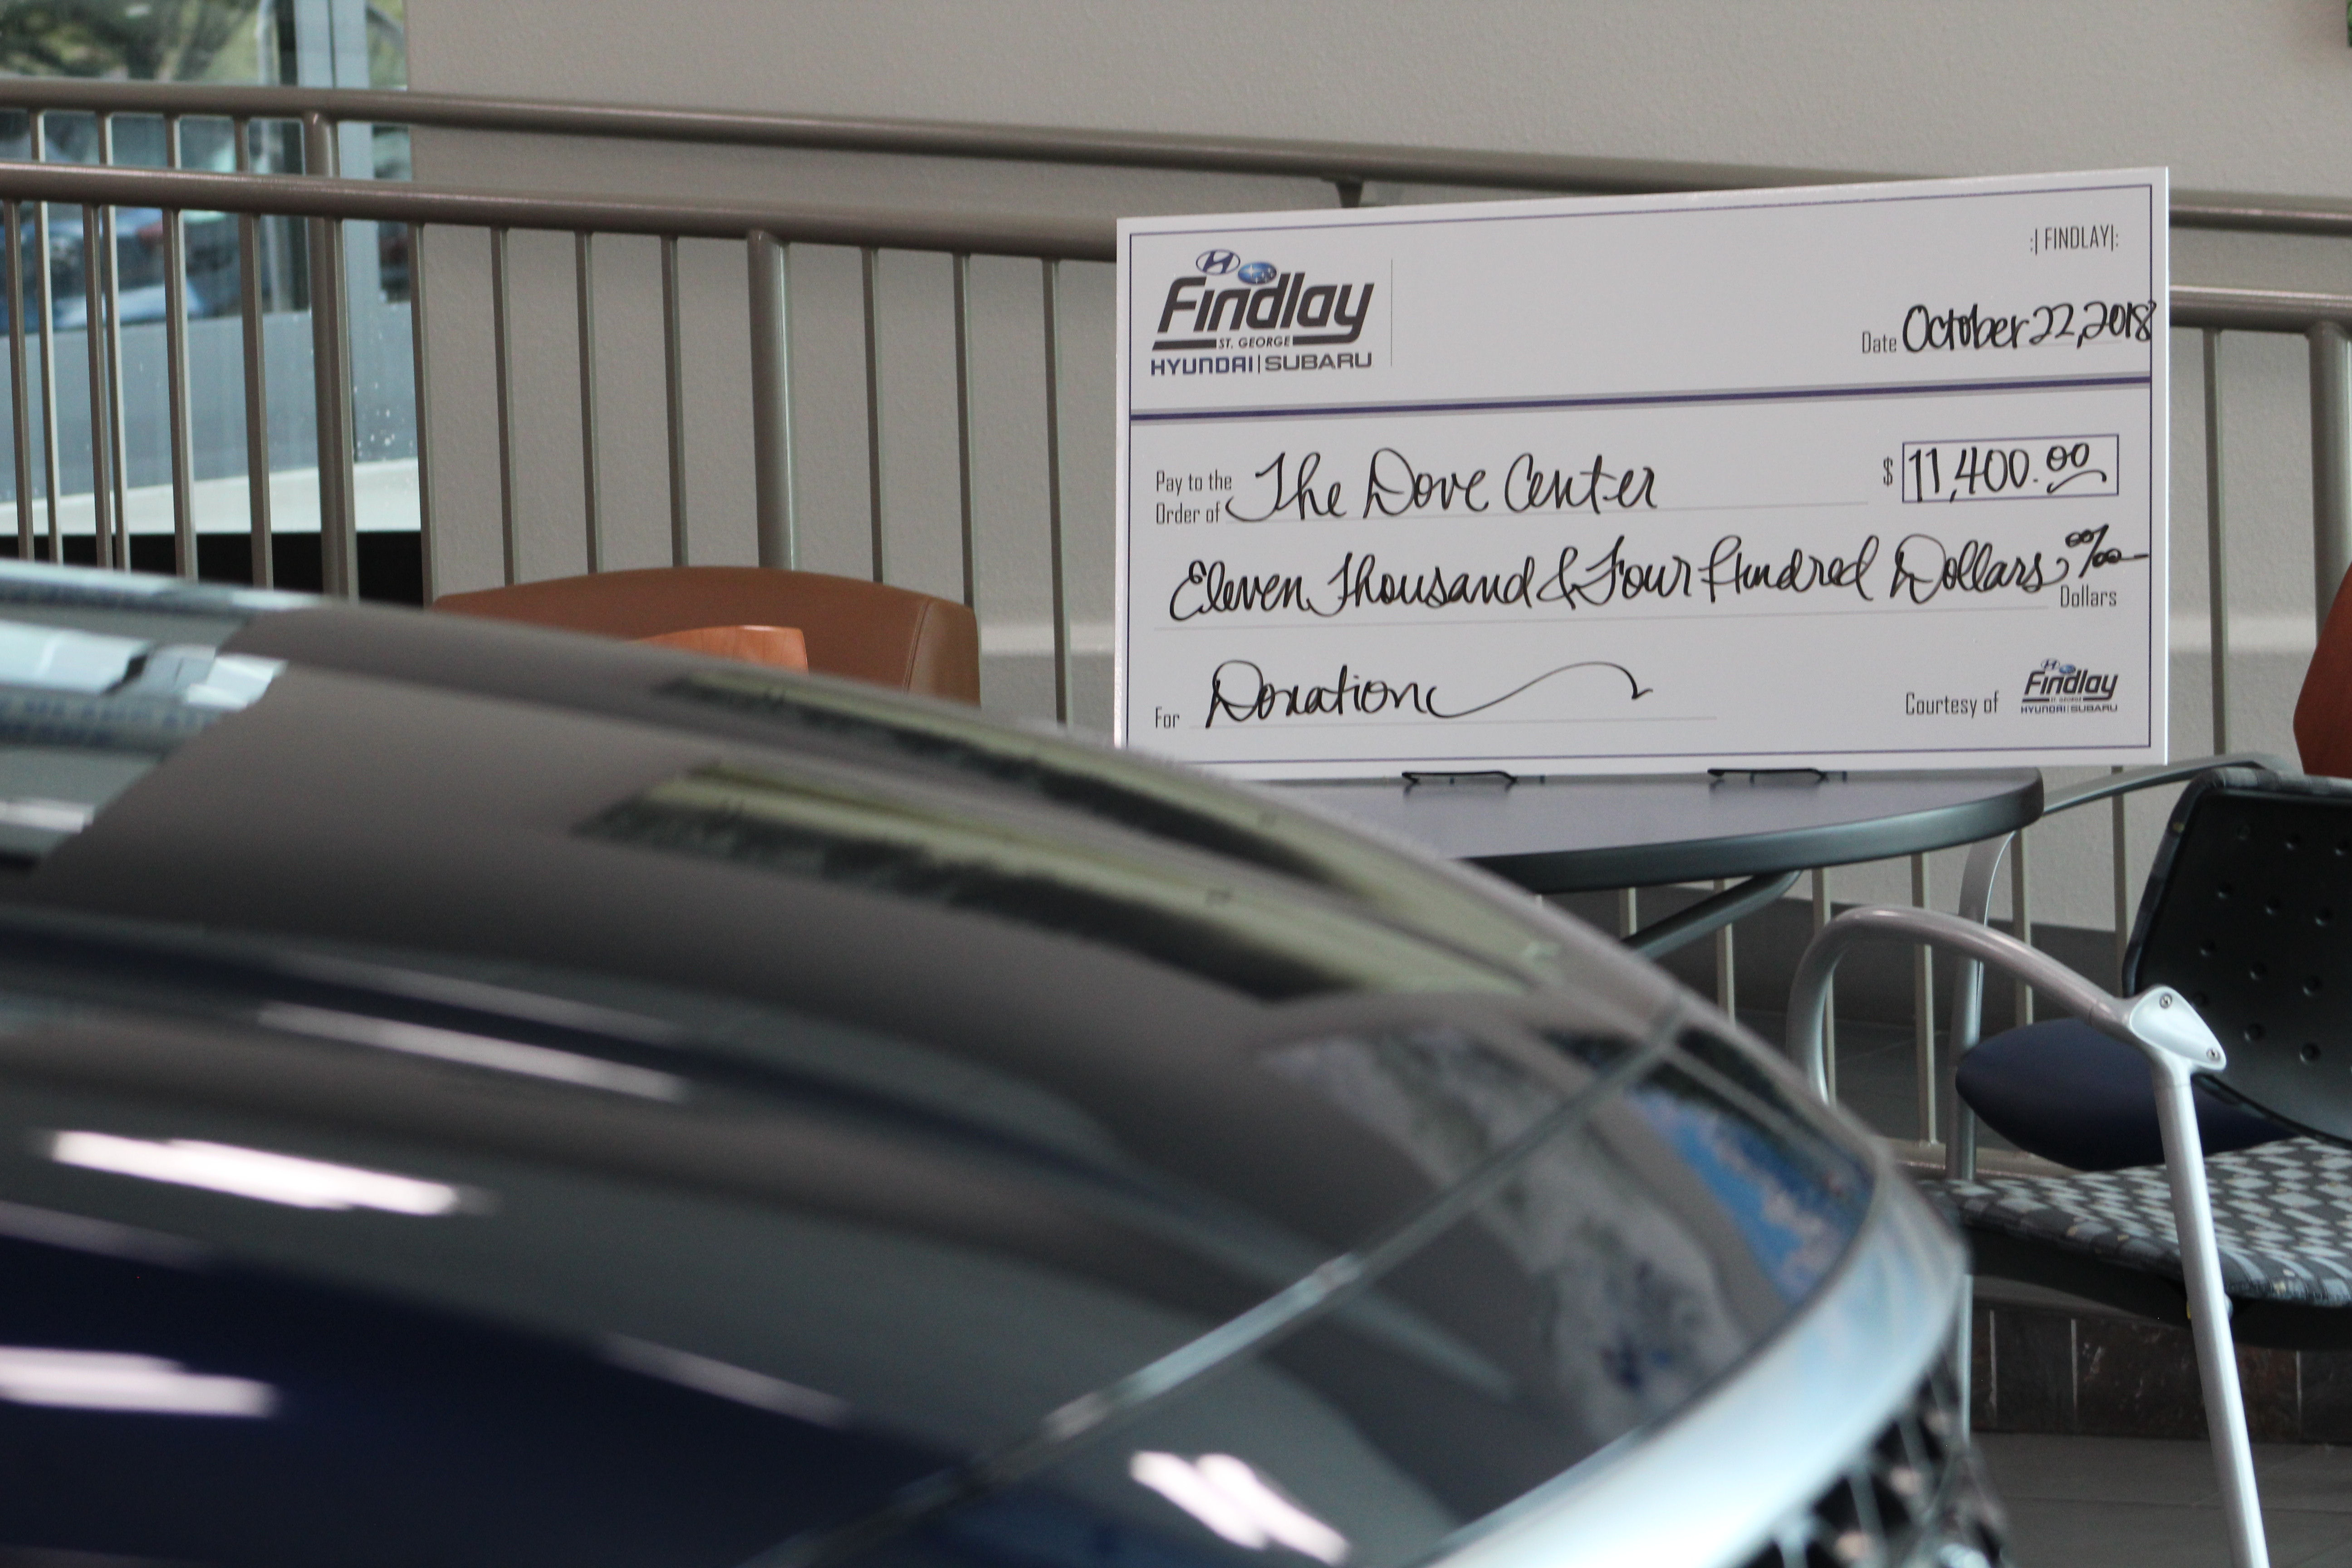 Superb A Check Presentation Was Held At Findlay Hyundai For The Dove Center Of St.  George, Oct. 22, 2018, St. George, Utah | Photo By Andrew Pinckney, ...